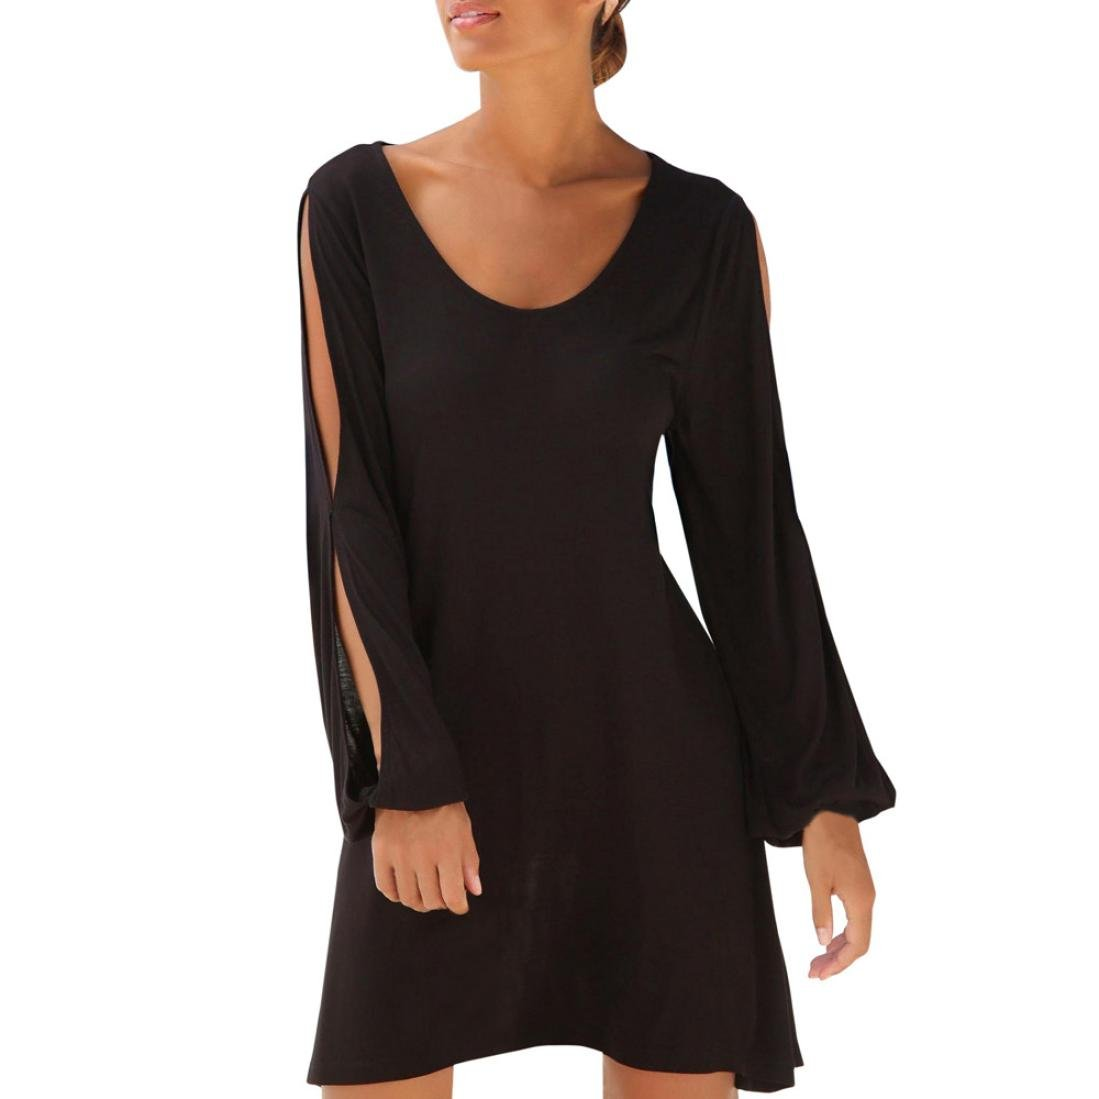 f911fc14e05a4 Fashion Women's Mini Dress, Casual O-Neck Hollow Out Sleeve Solid Beach  Style Long Dresses at Amazon Women's Clothing store: